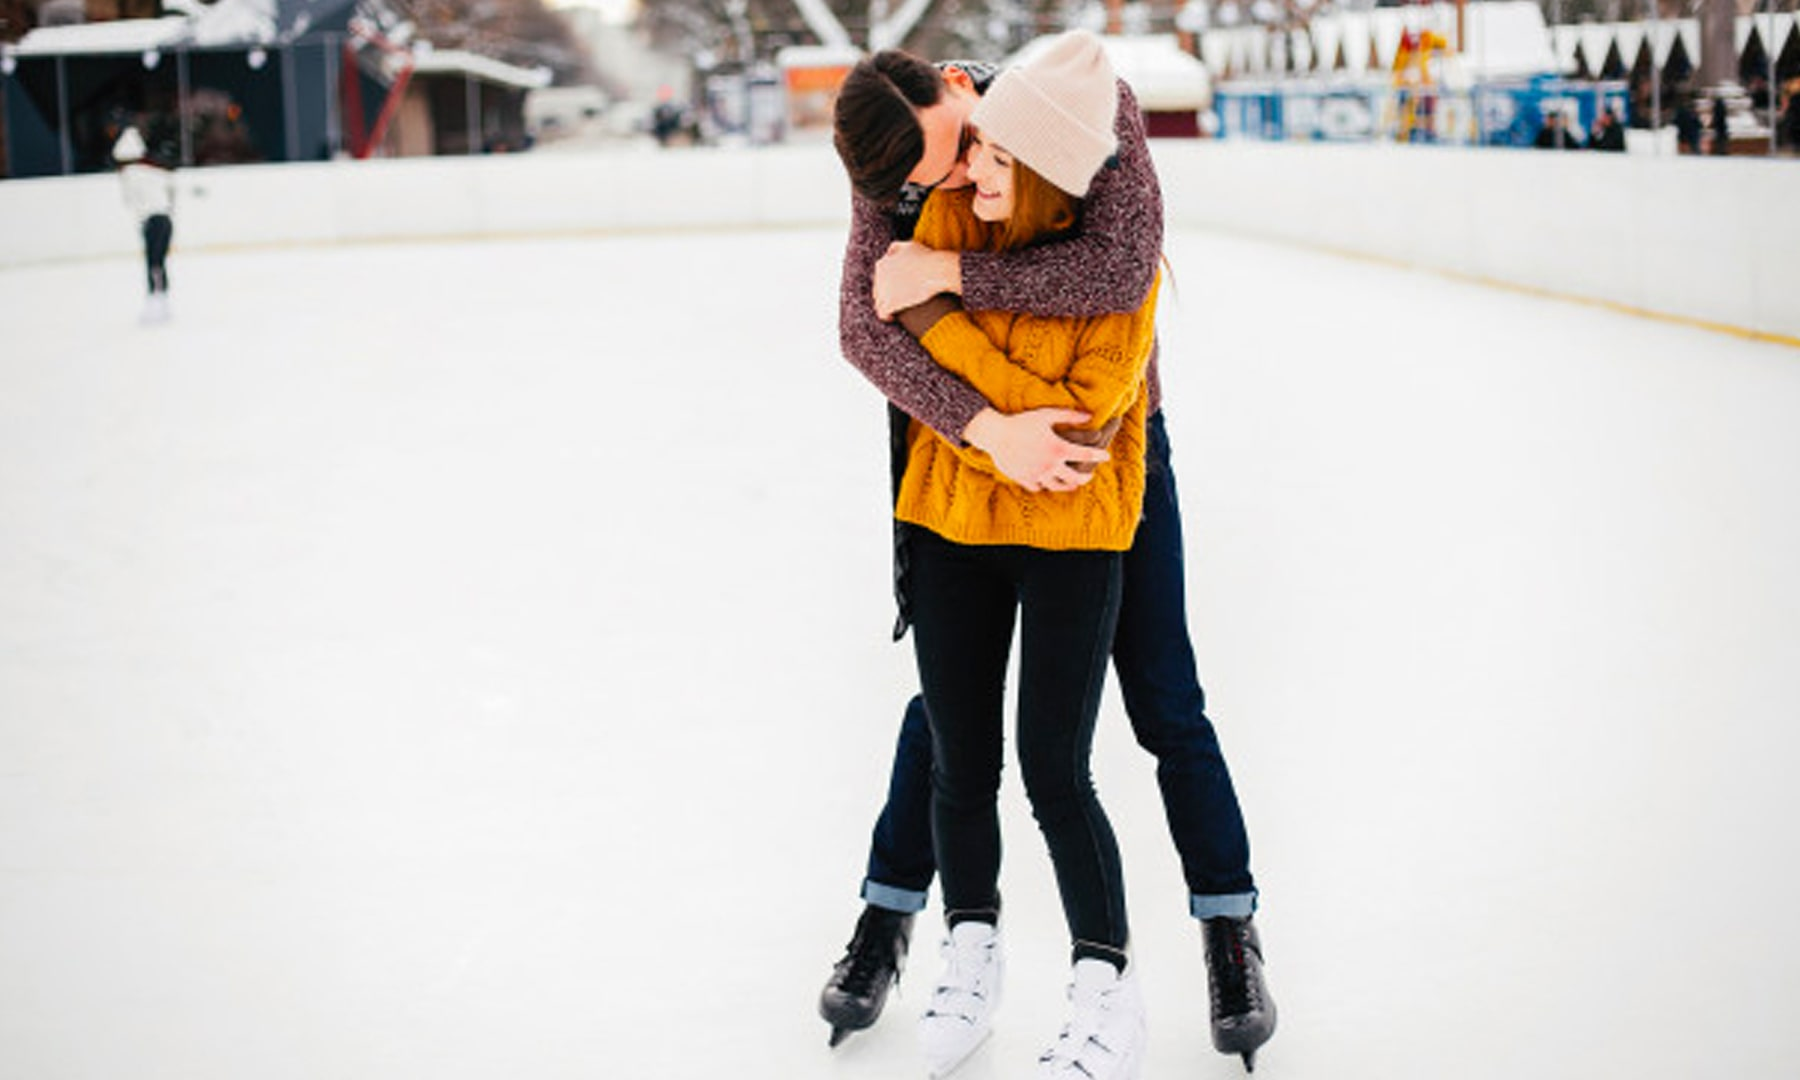 bloomthis-valentines-date-ideas-couple-ice-skating